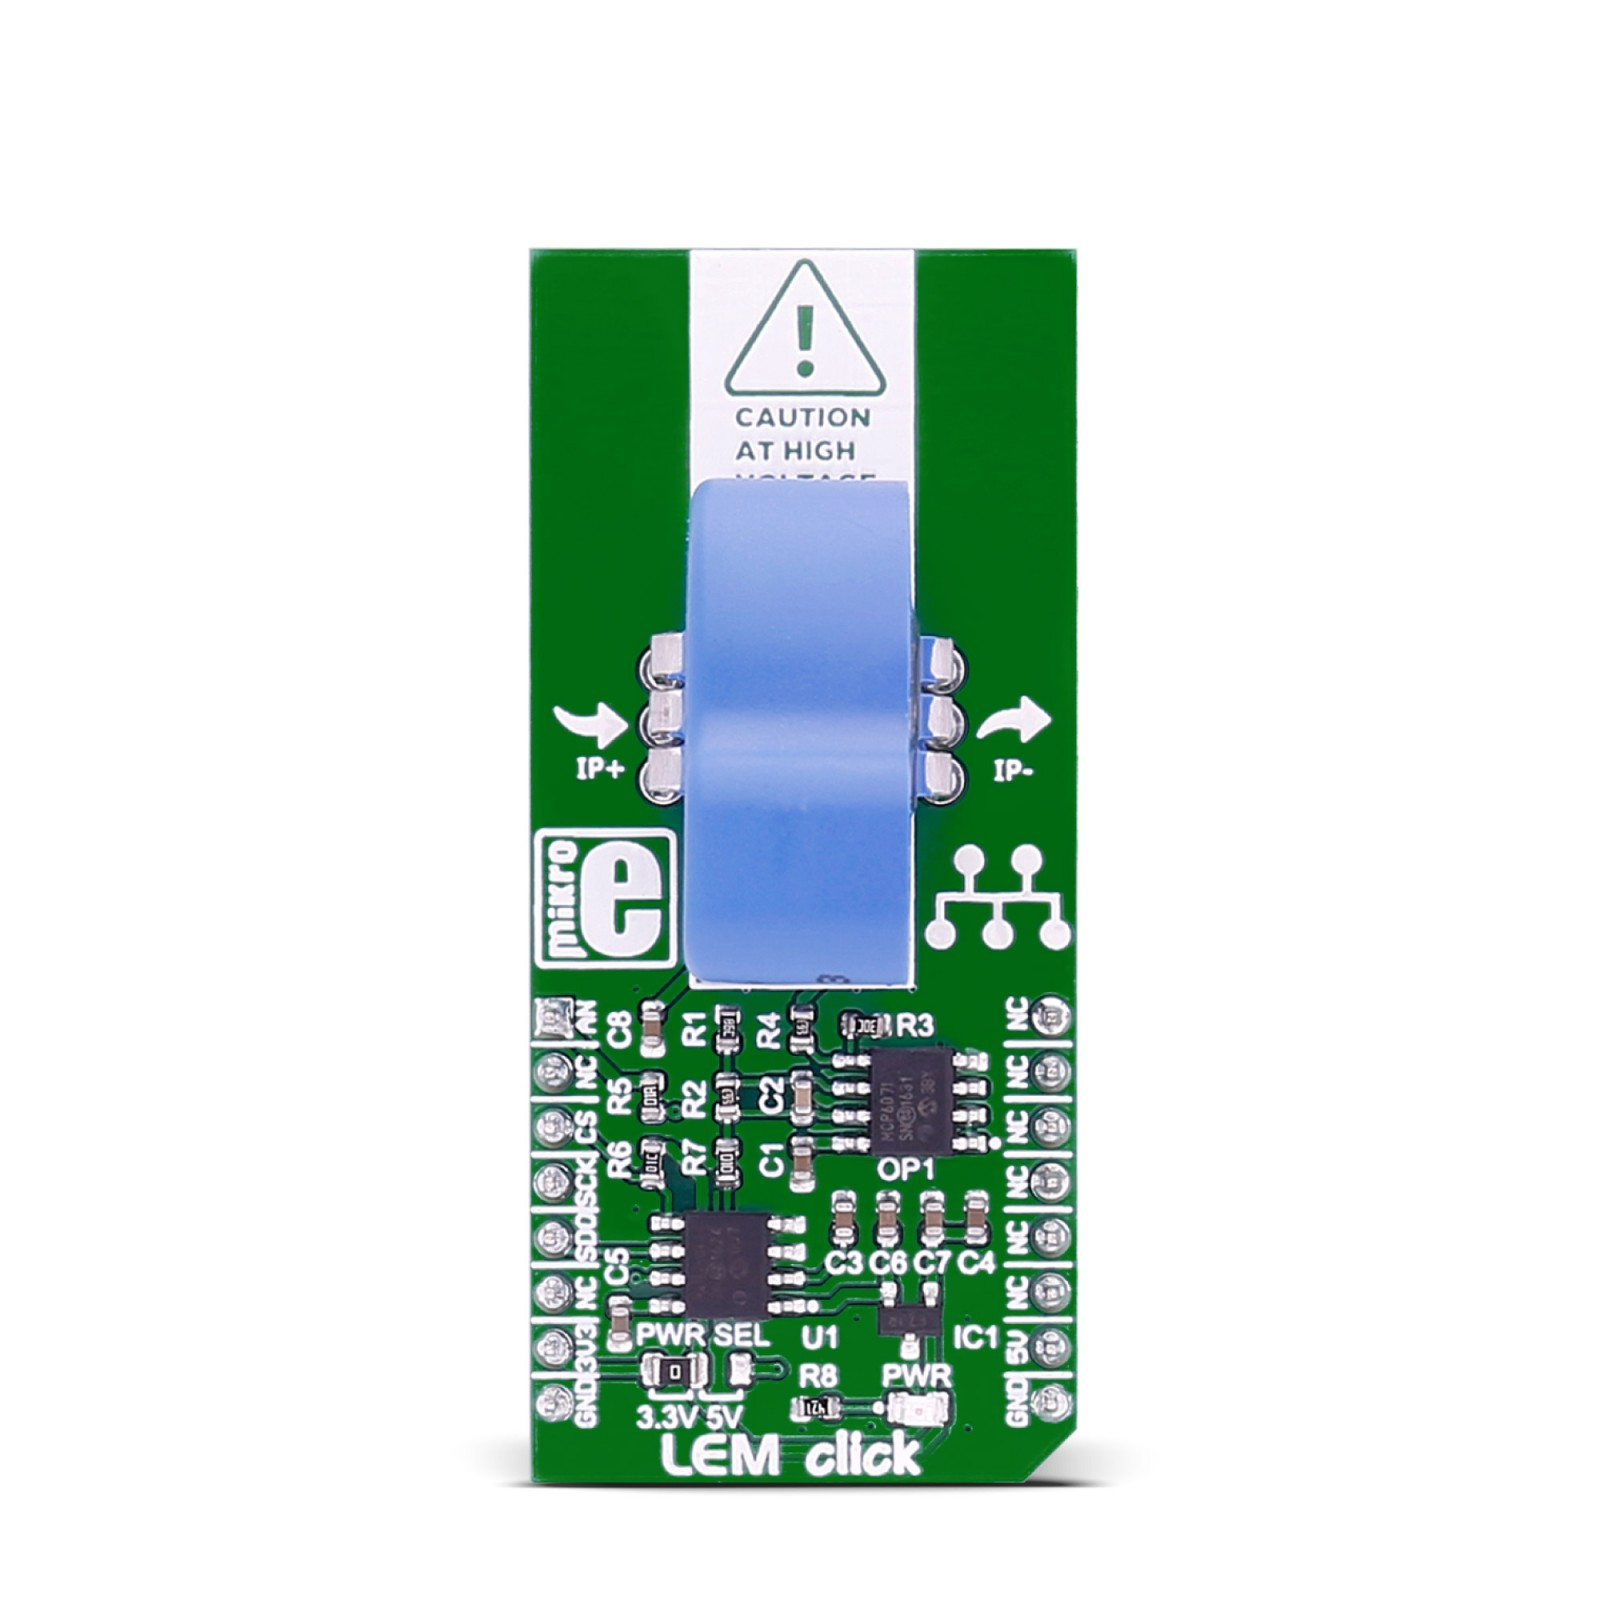 Lem Click Board With Lts 6 Np Current Transducer Mikroelektronika On The Schematic To Open A Larger Version In New Window Or Mgctlbxnmzp Mgctlbxv5112 Mgctlbxlc Mgctlbxpprestashop